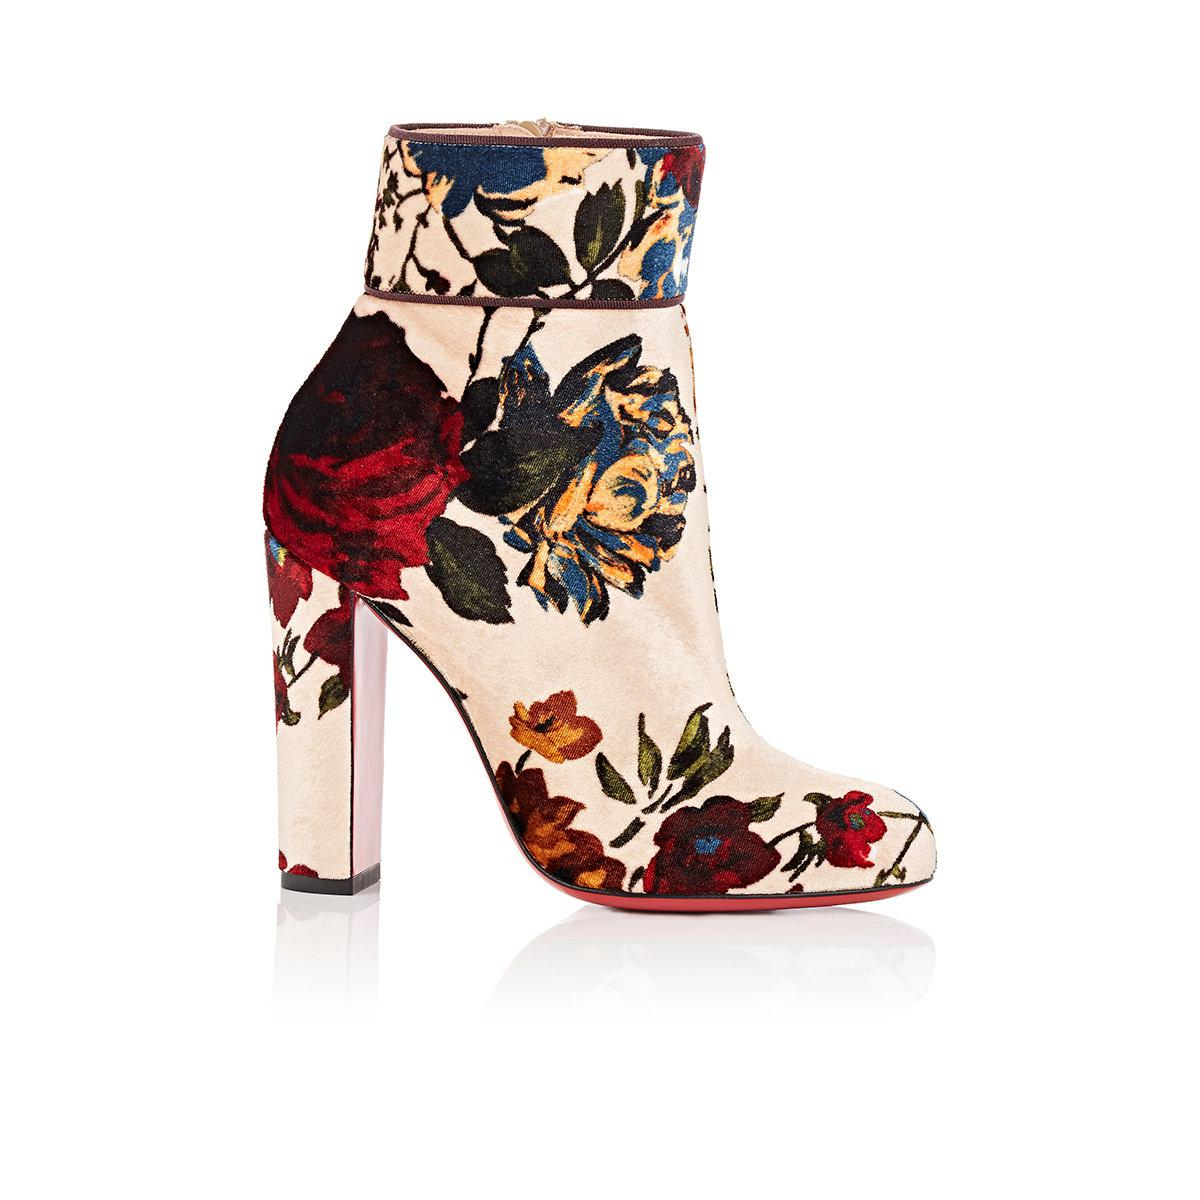 ddefb7f6aaf5 Lyst - Christian Louboutin Moulamax Velvet Ankle Boots in Natural